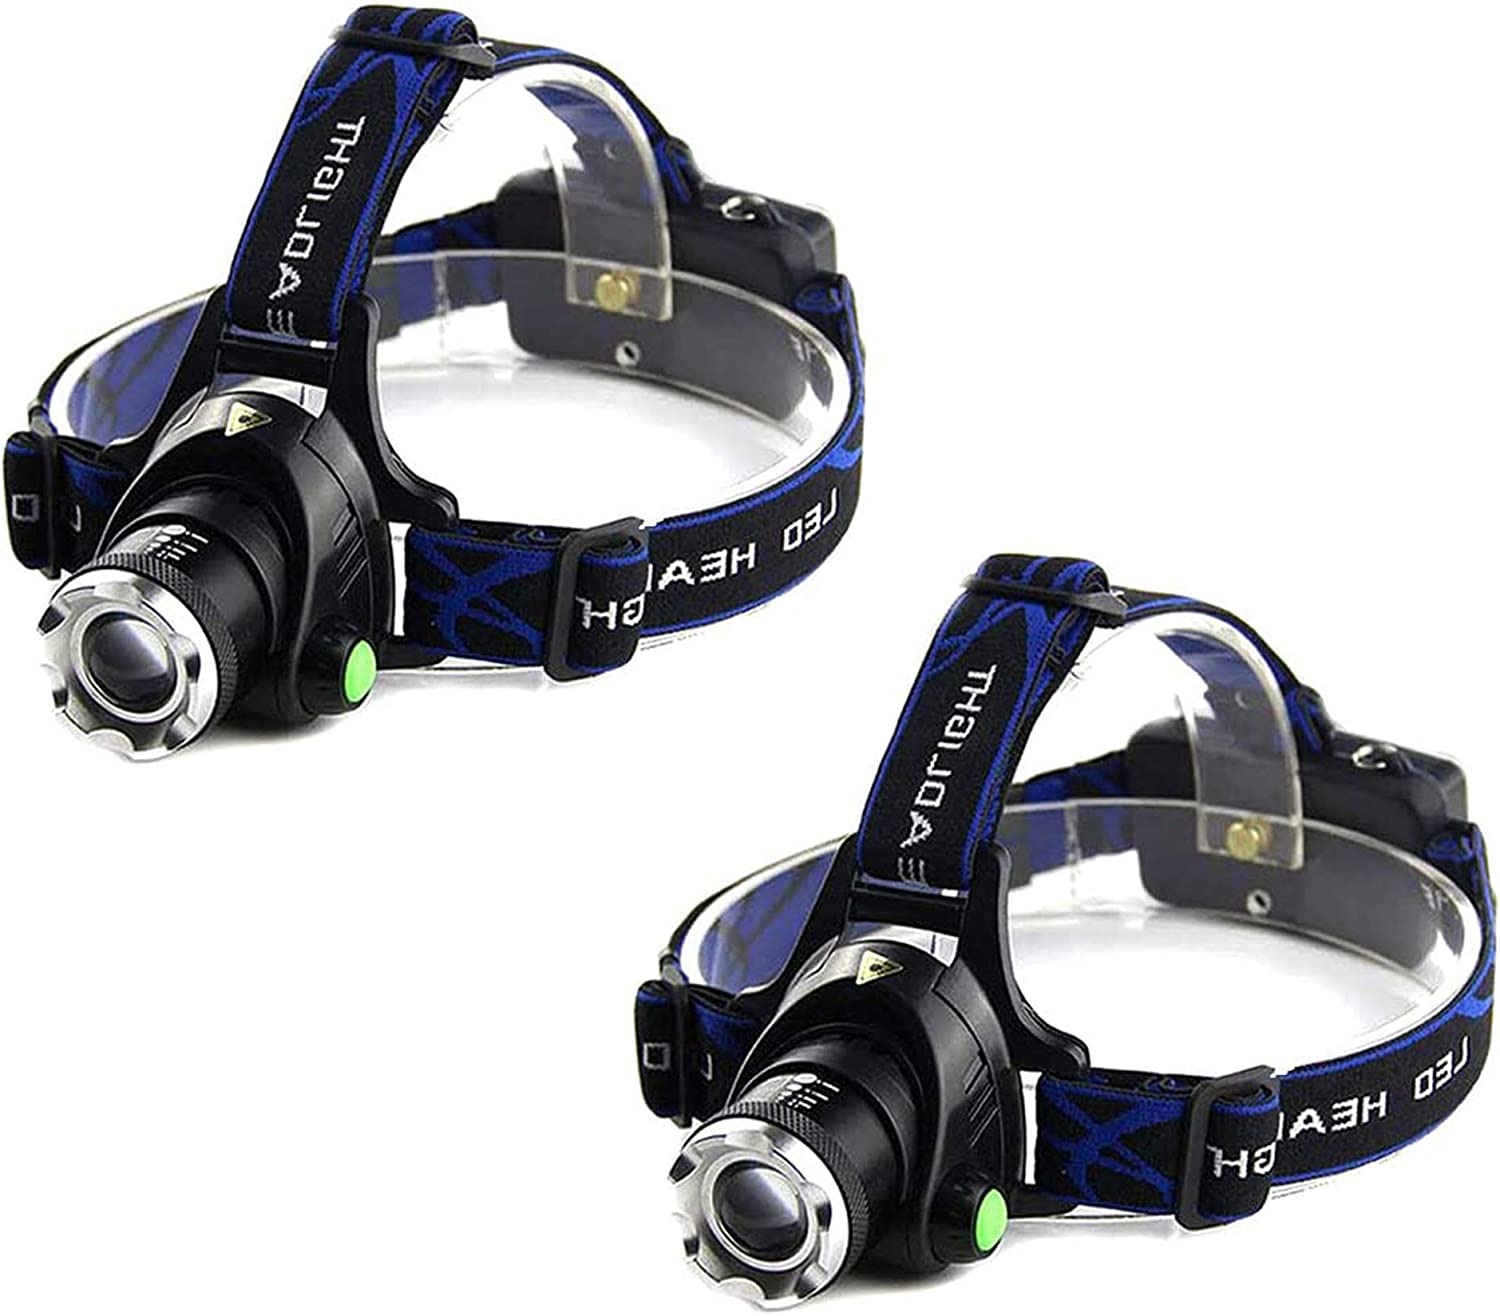 COB LED Headlamp 4 Modes Waterproof Headlight Head Flashlight Torch Lante xhL/_TI